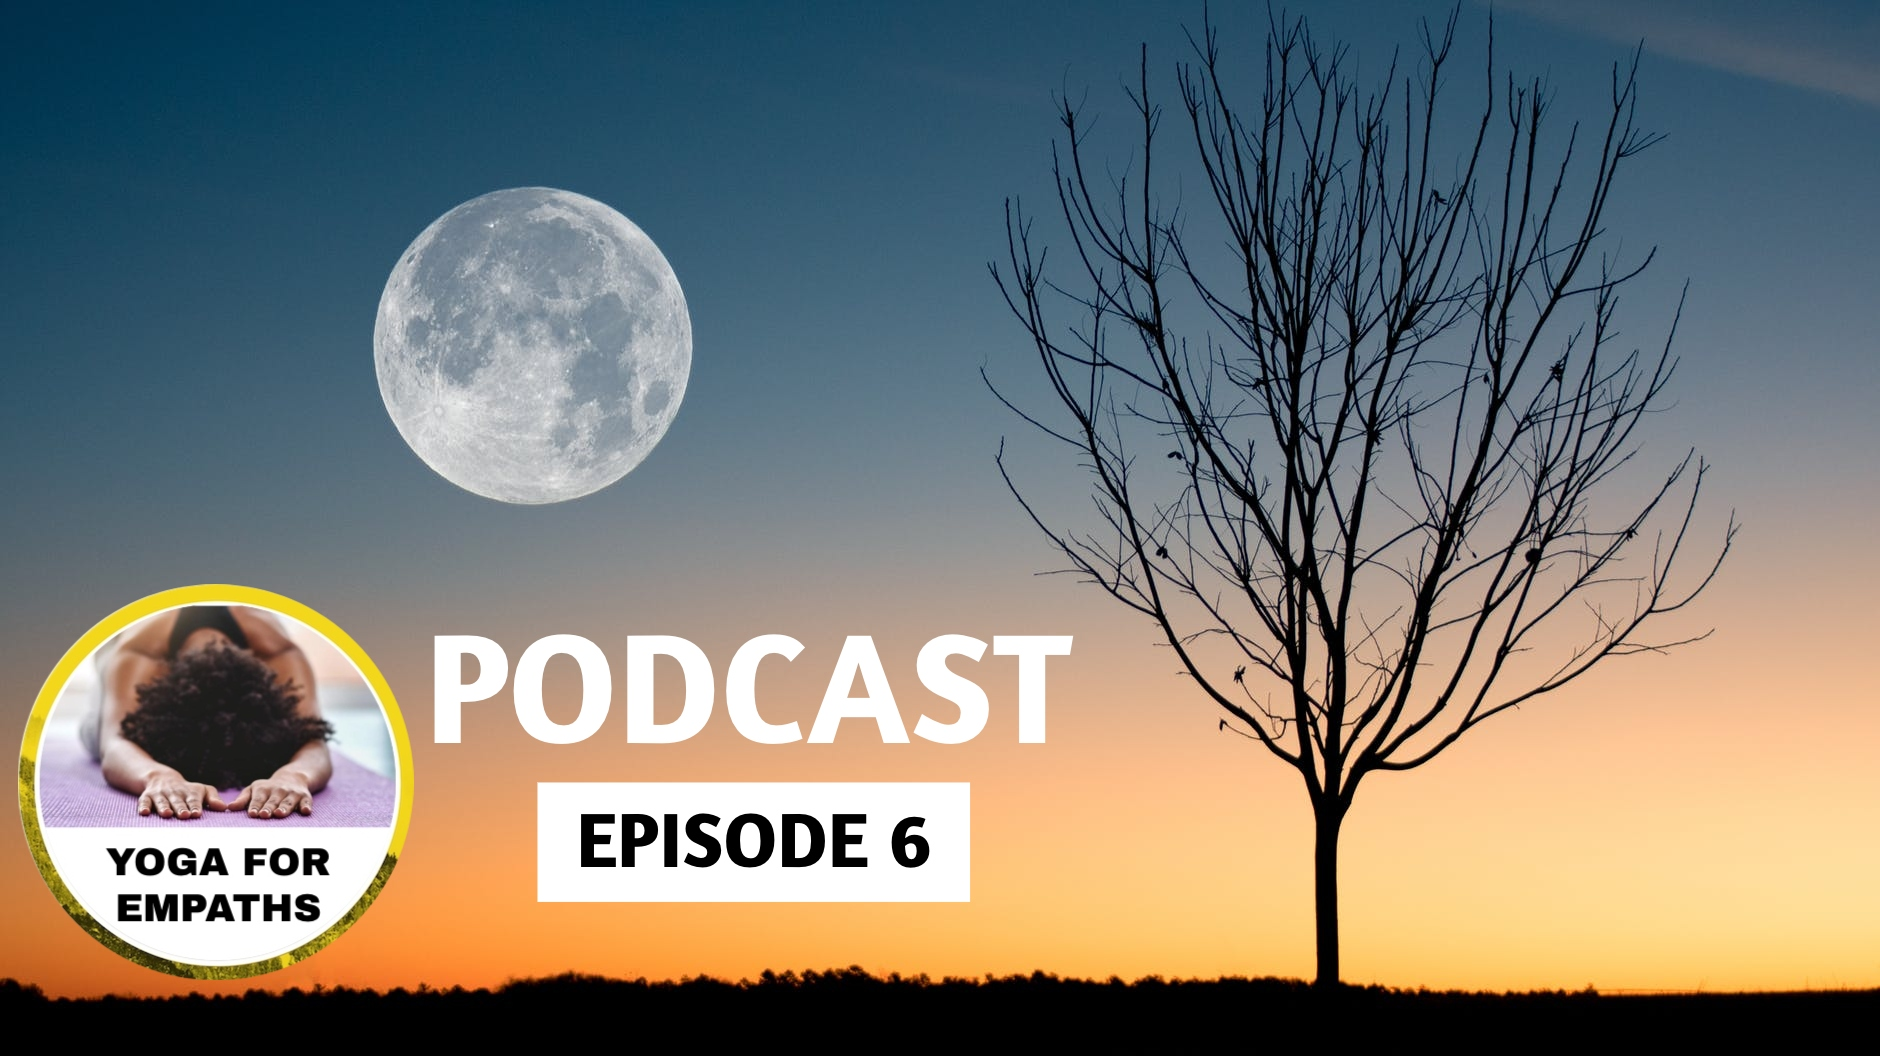 PODCAST – EPISODE 6: LEO FULL MOON Meditation & Reflections